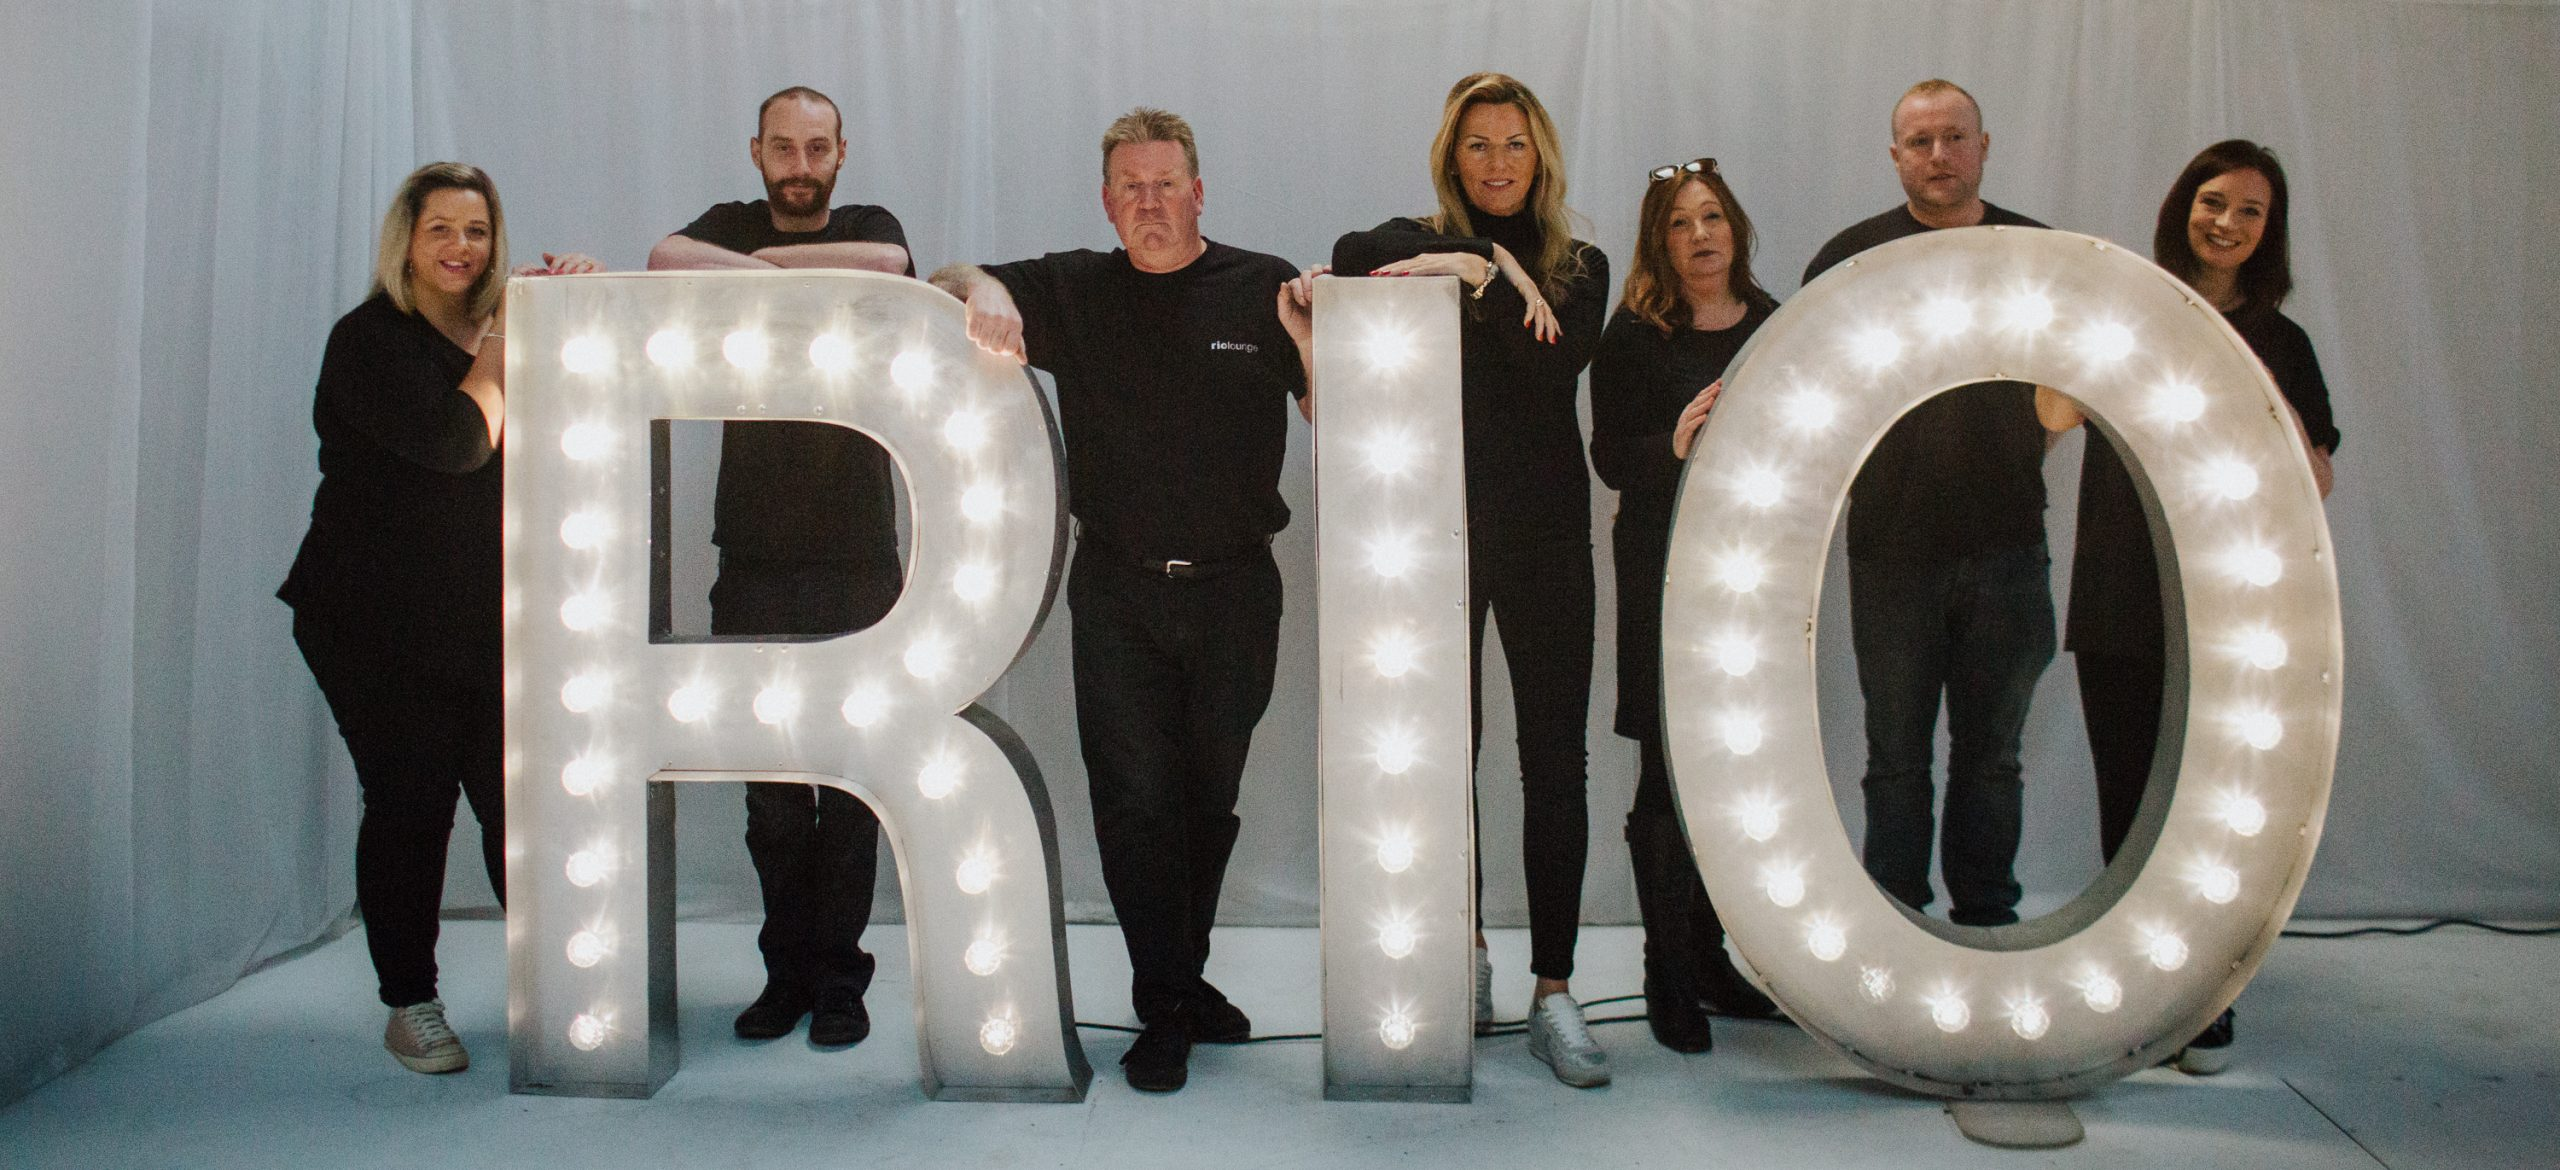 furniture hire company staff with light up letters